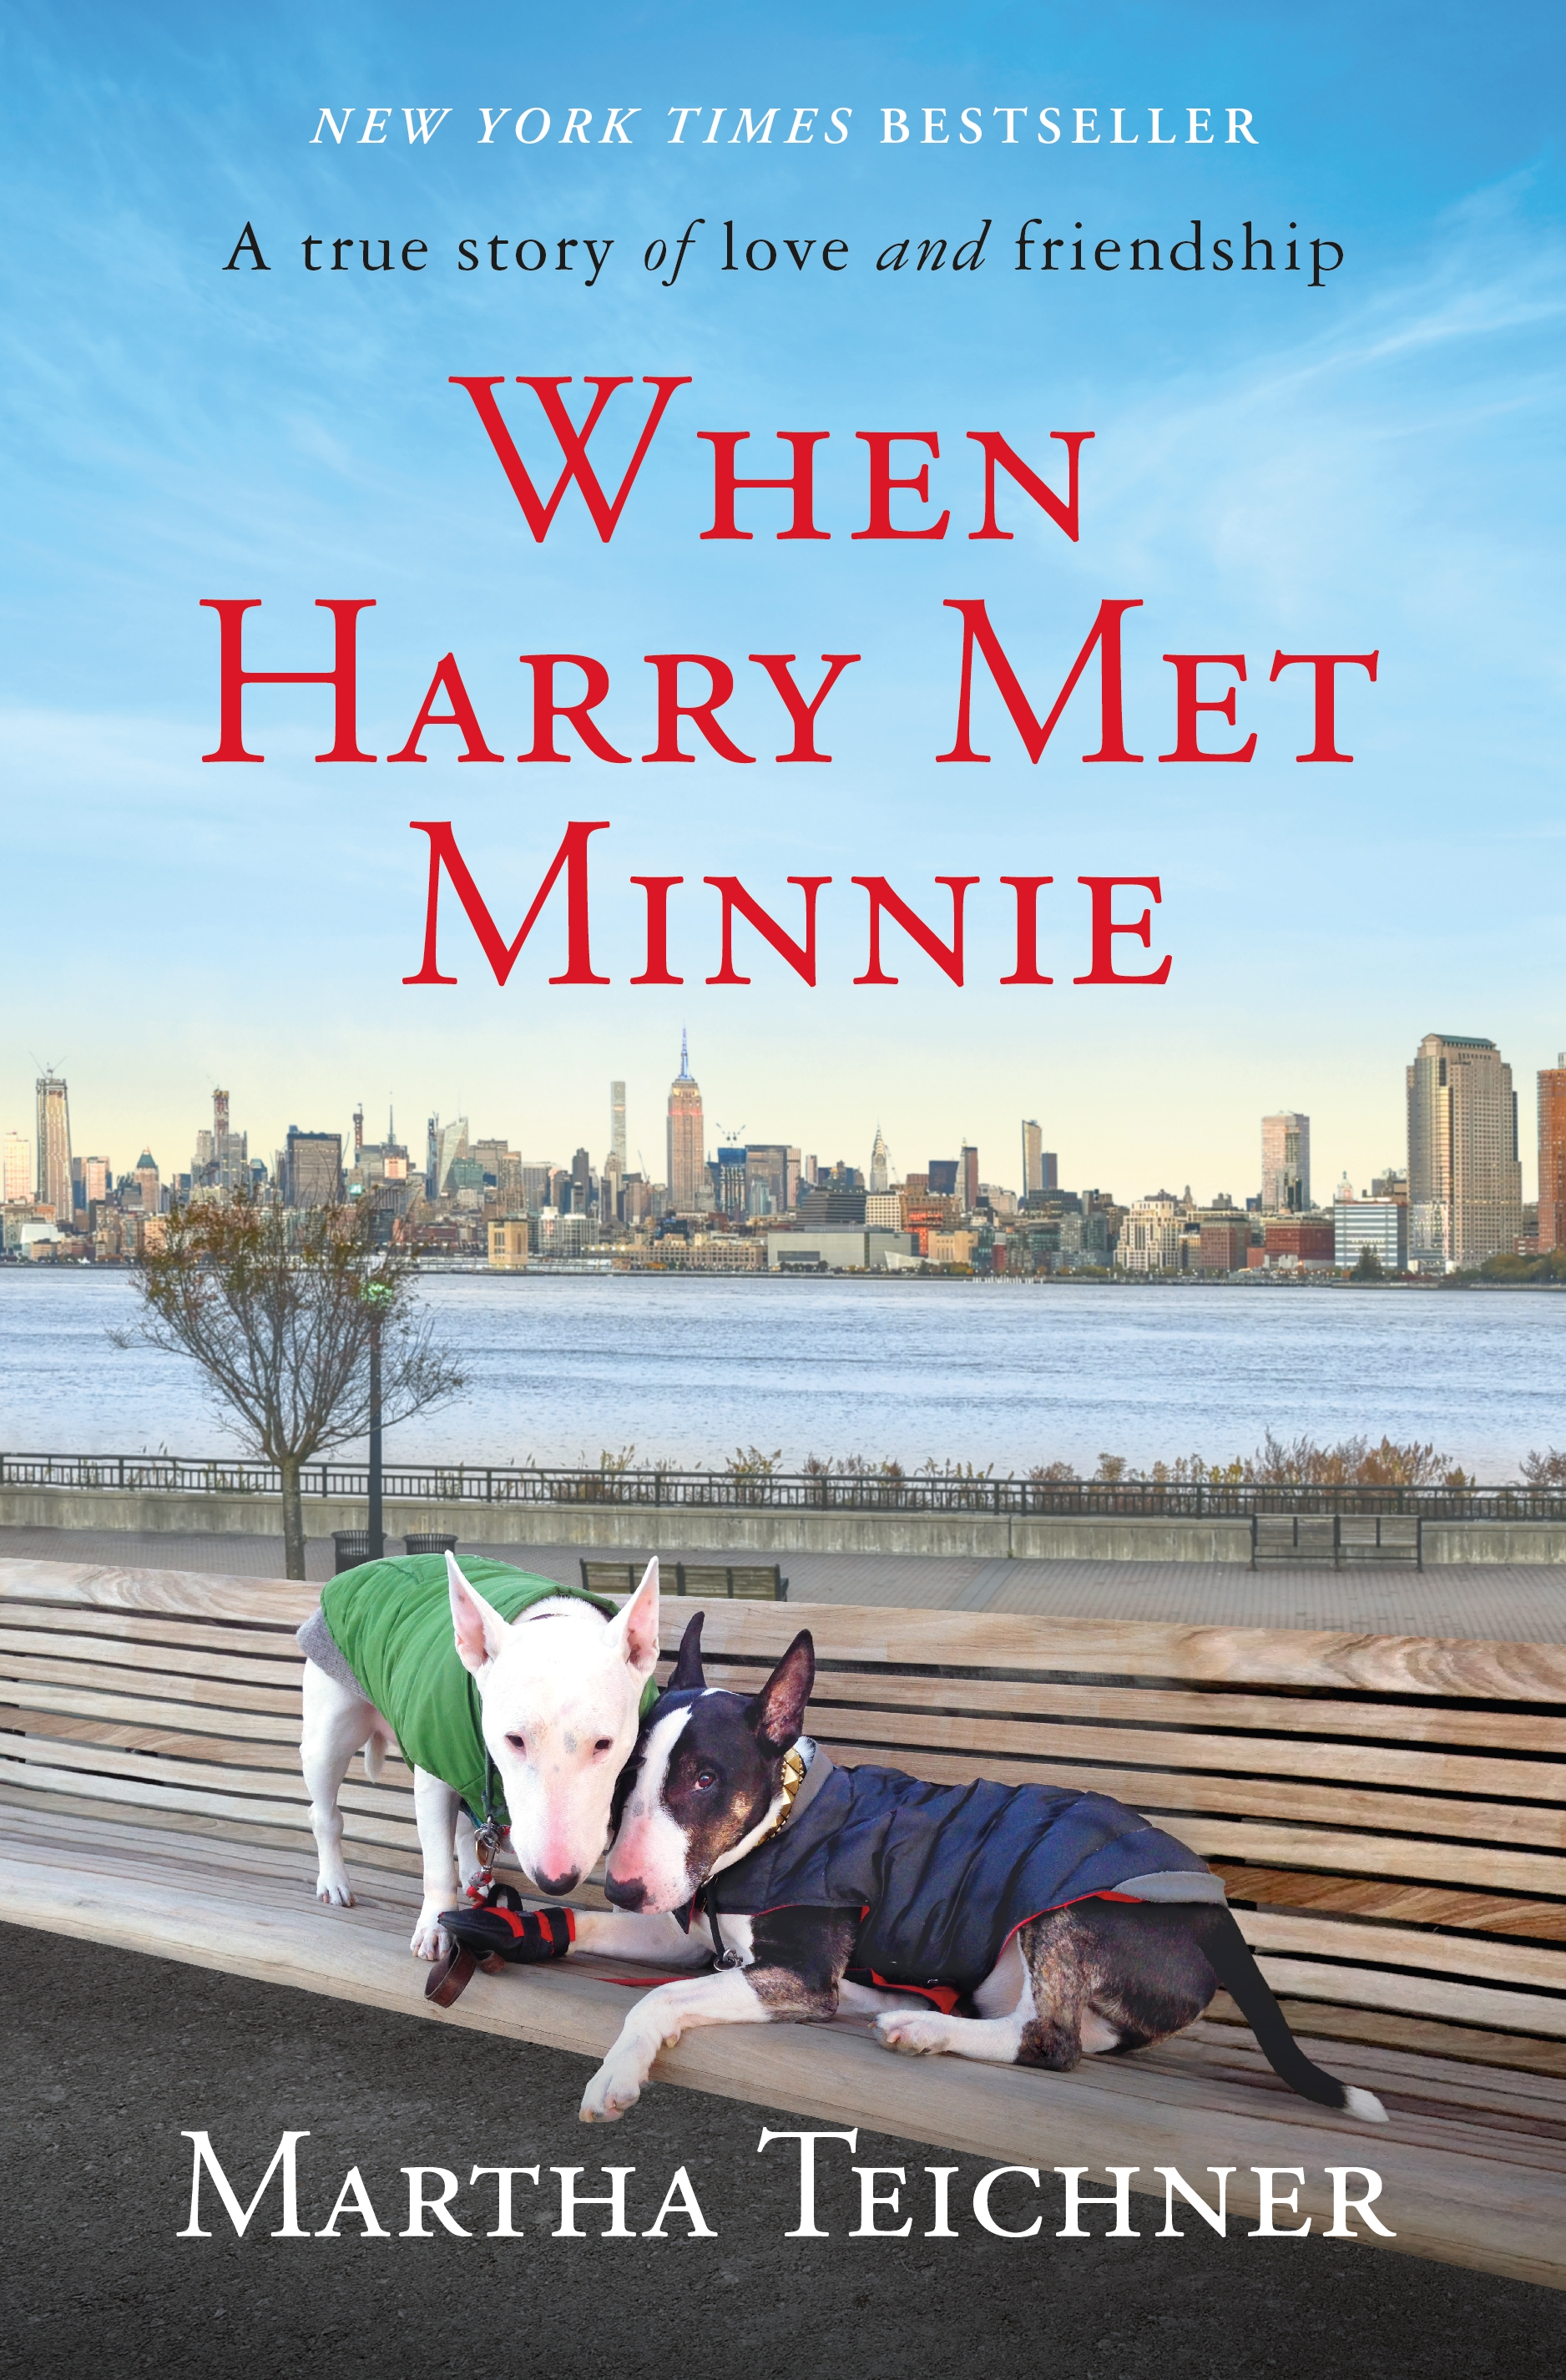 When Harry Met Minnie A True Story of Love and Friendship